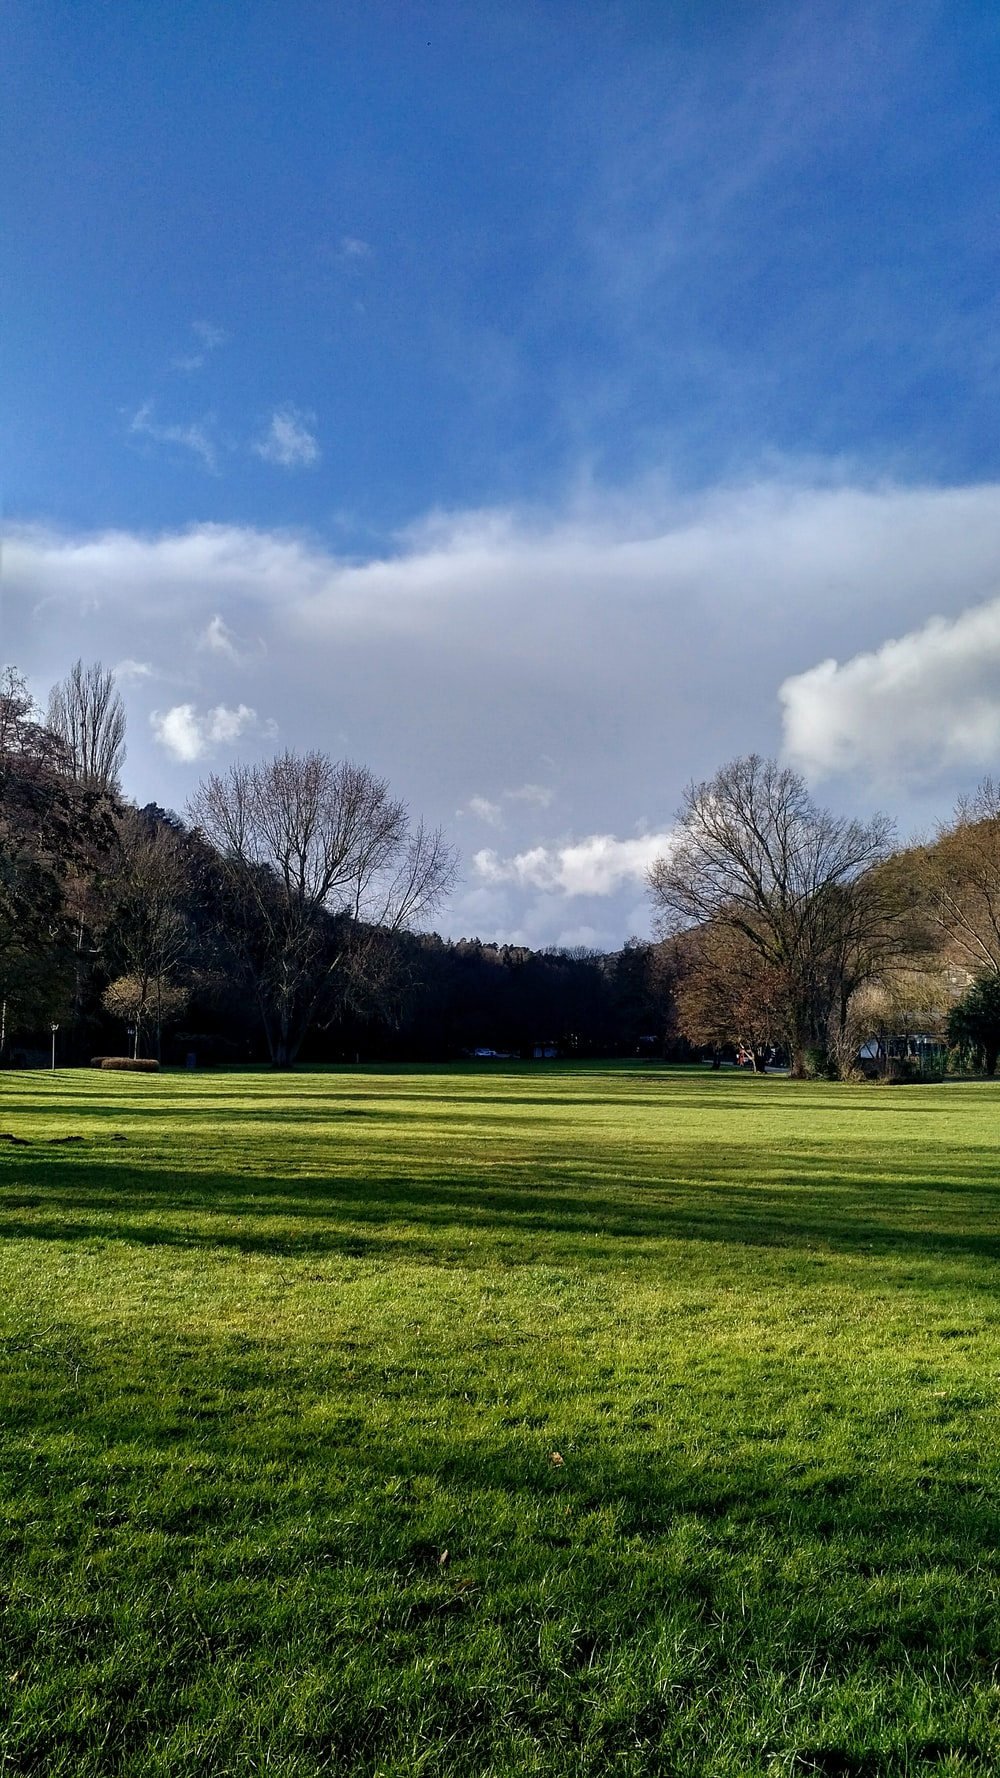 green grass field with leafless trees under blue sky and white clouds during daytime